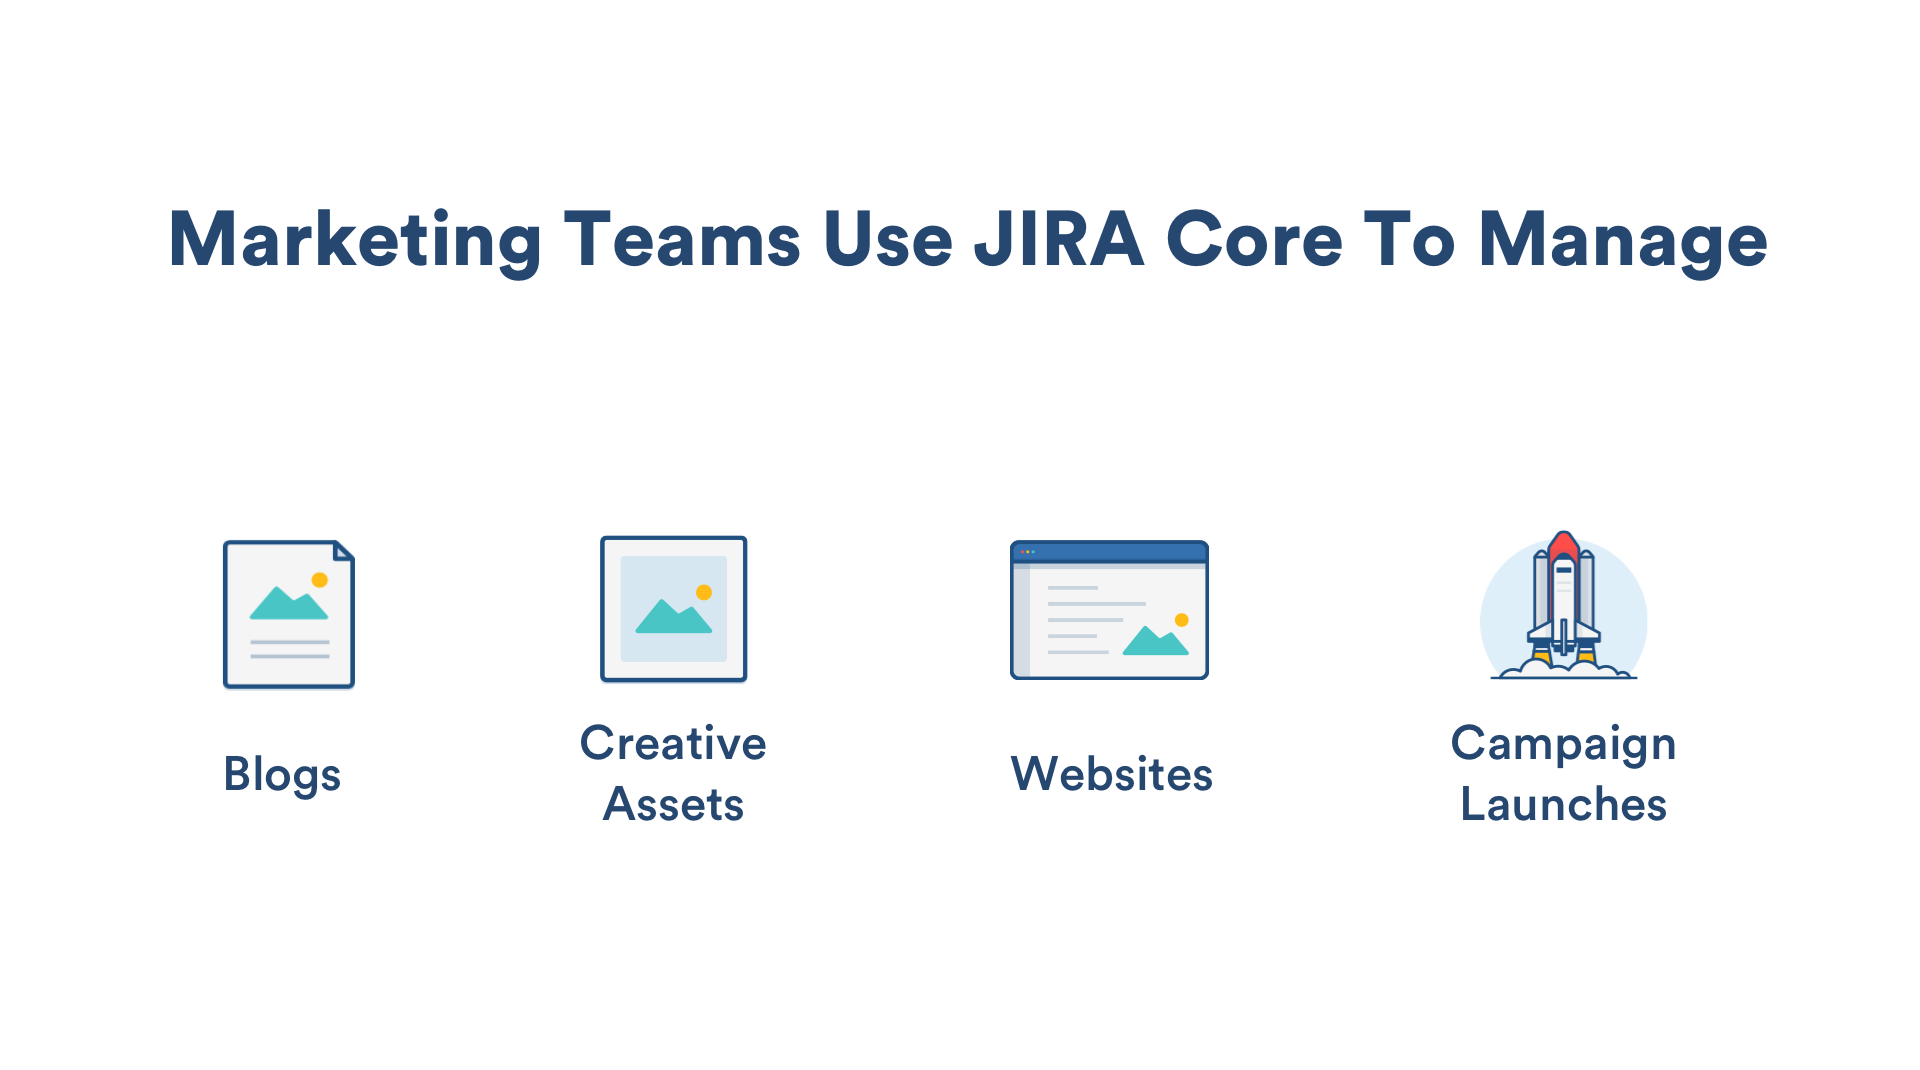 Watch our video about JIRA Core